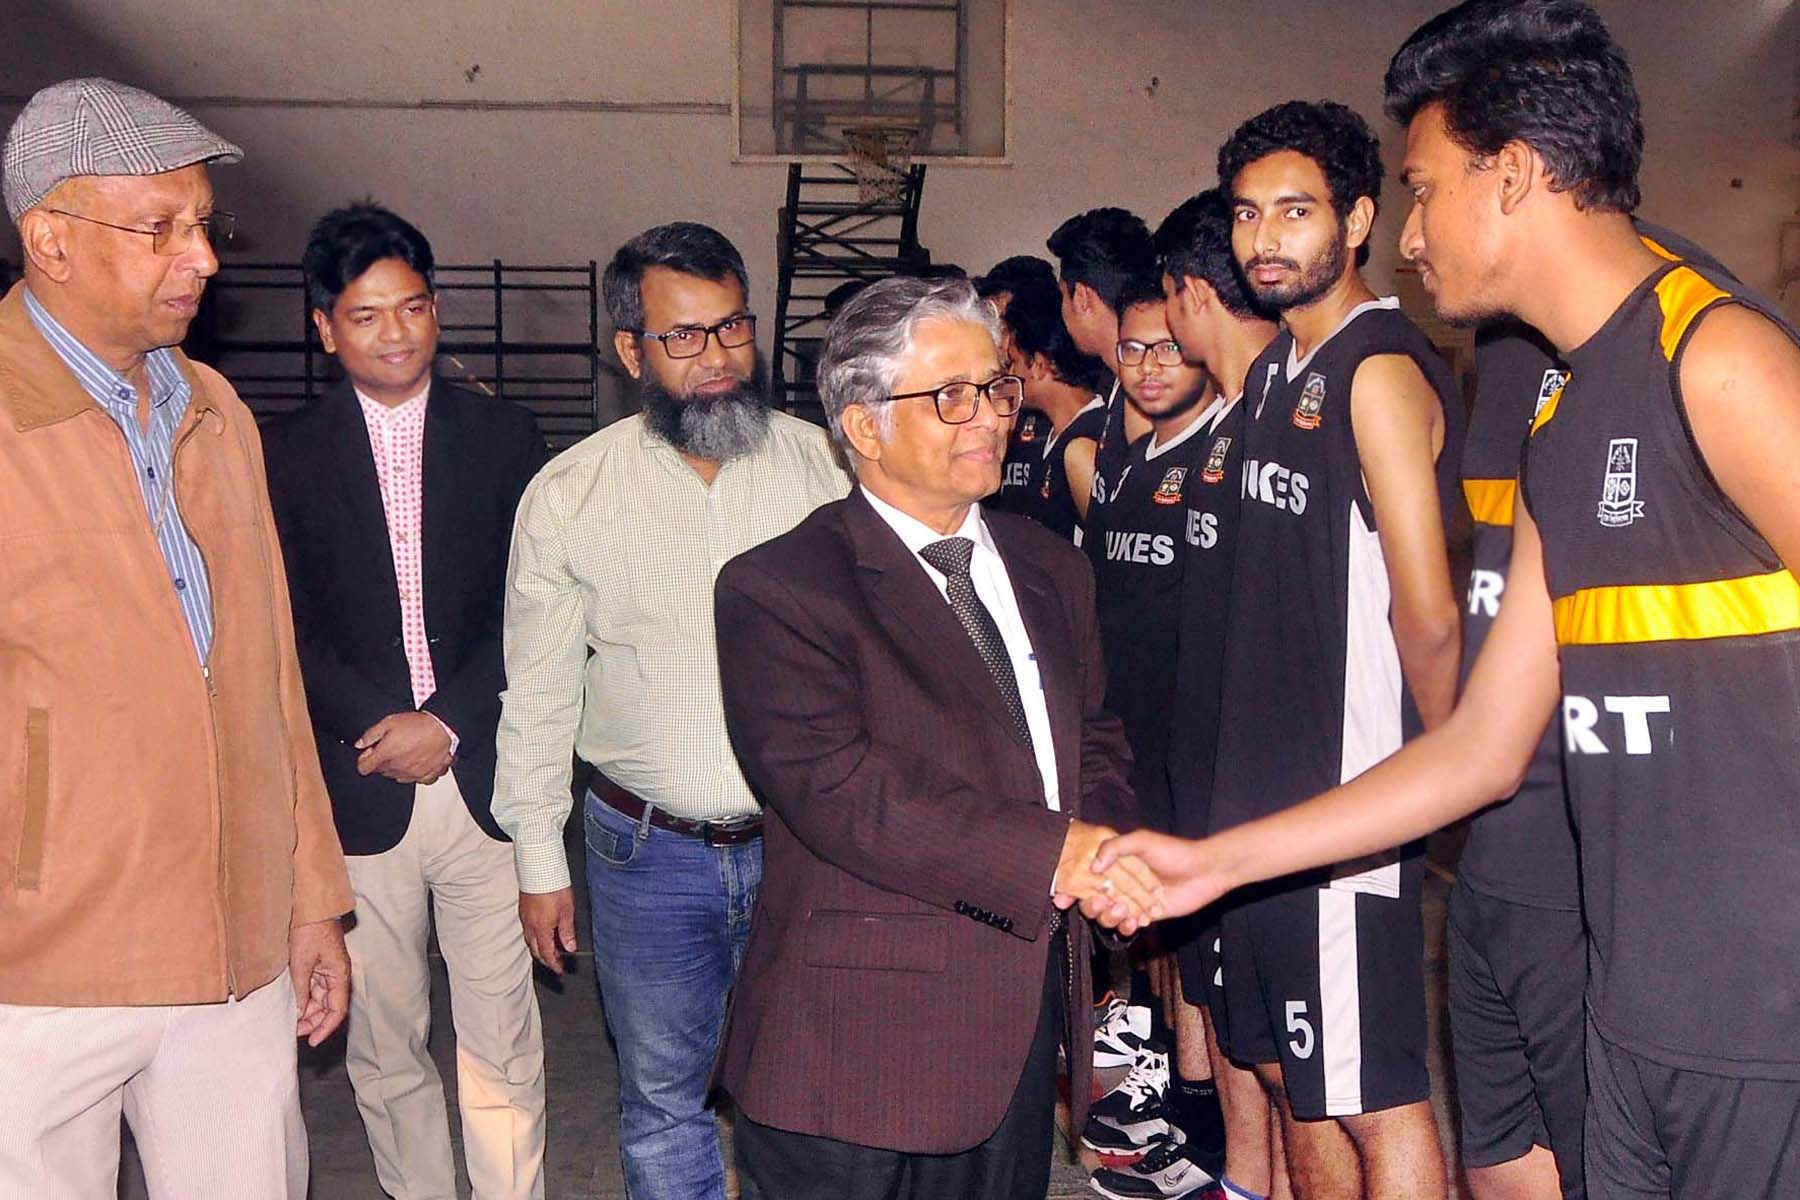 Vice-Chancellor of Dhaka University (DU) Professor Dr Md Akhtaruzzaman being introduced with the participants of the Inter-Department Basketball Competition of DU at the Gymnasium of DU on Sunday.